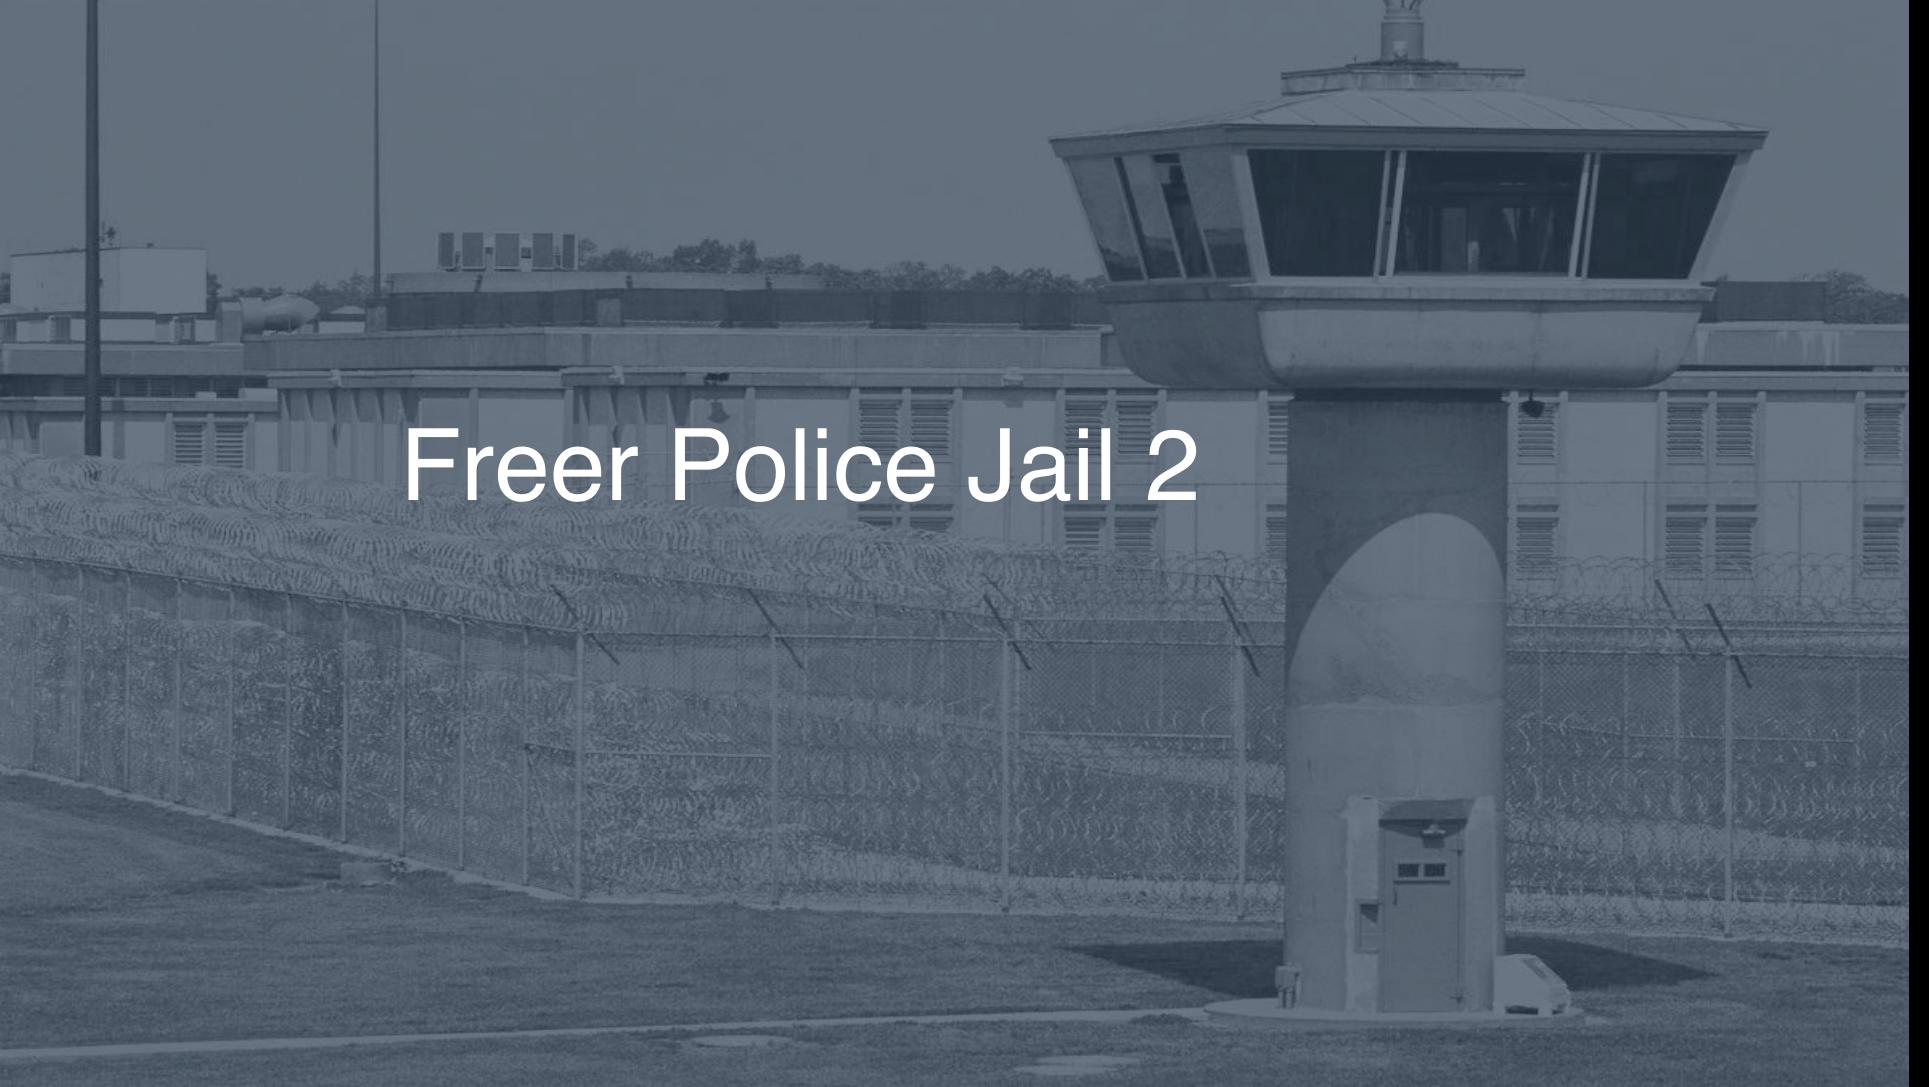 Freer Police Jail correctional facility picture